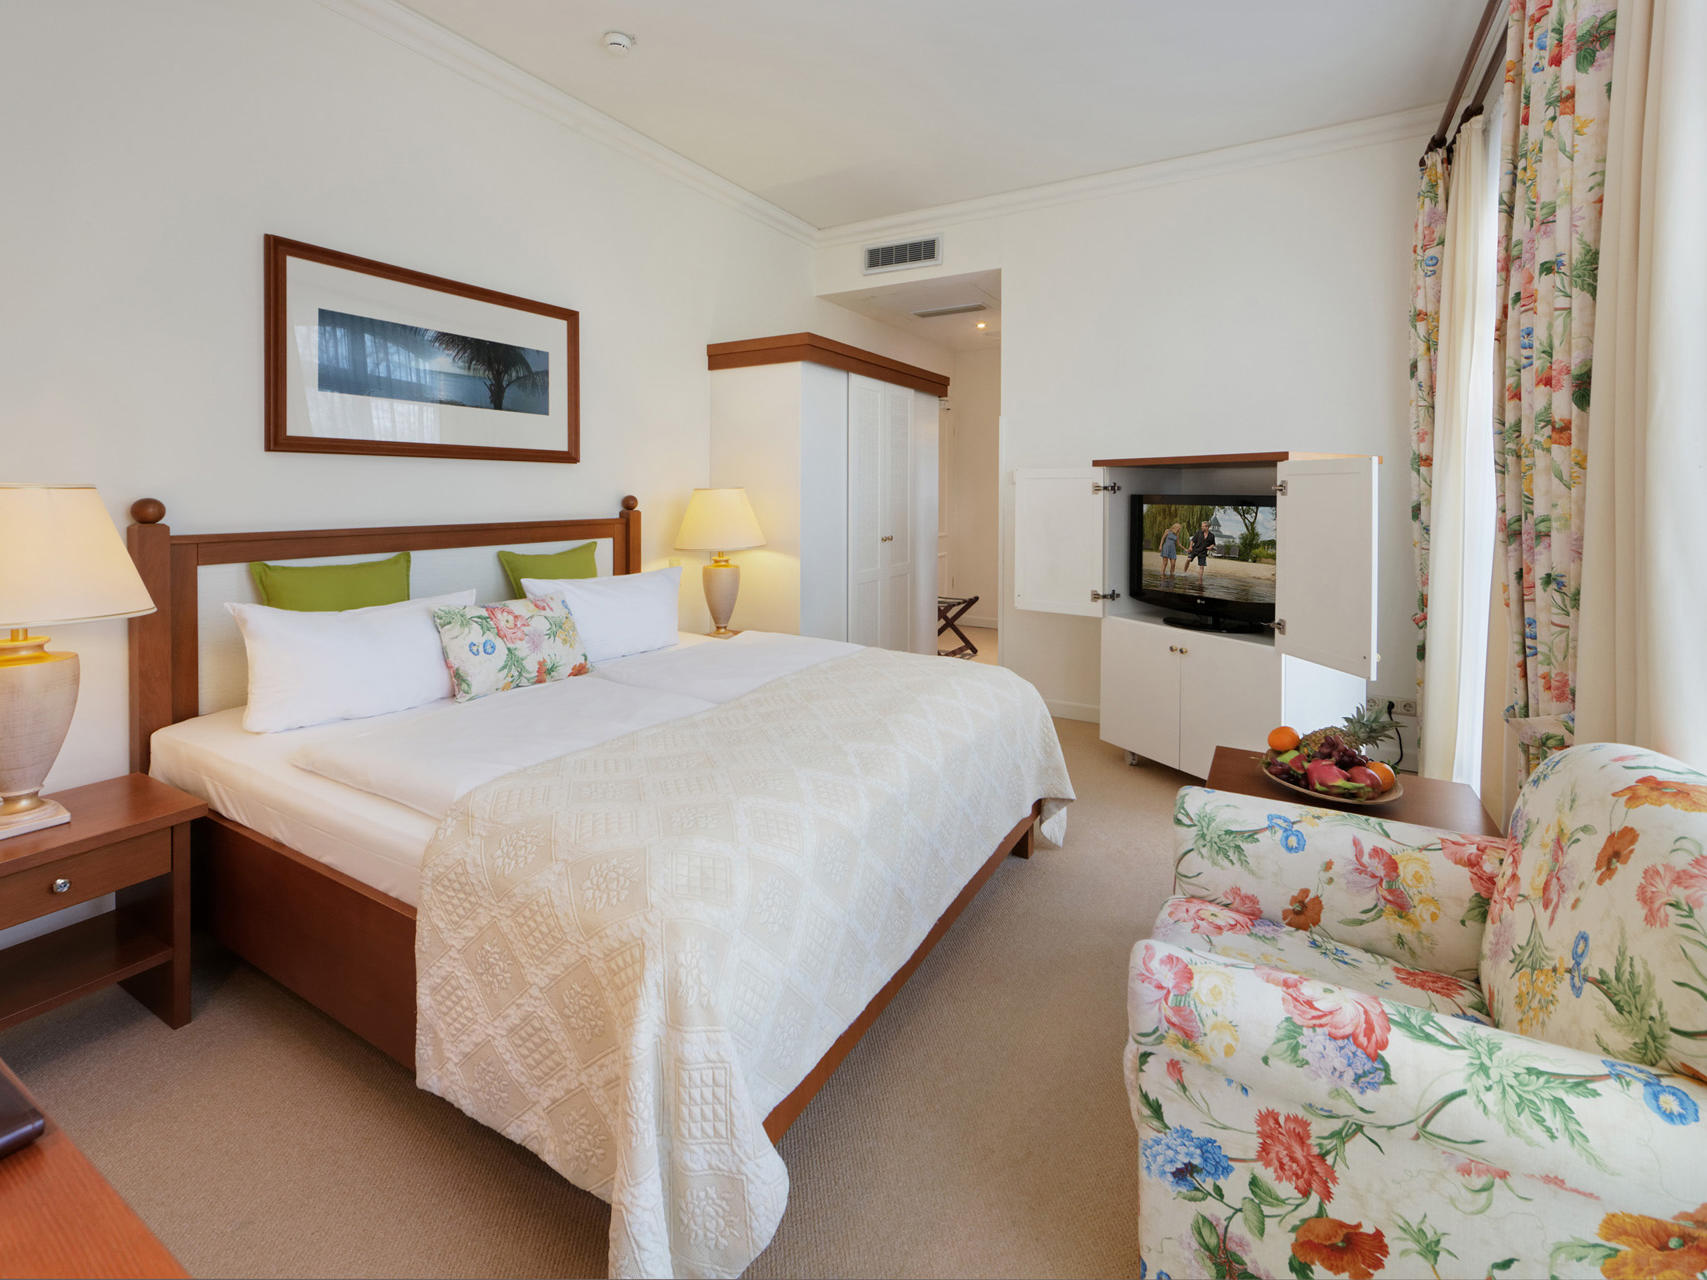 Standard room at Precise Resort Schwielowsee